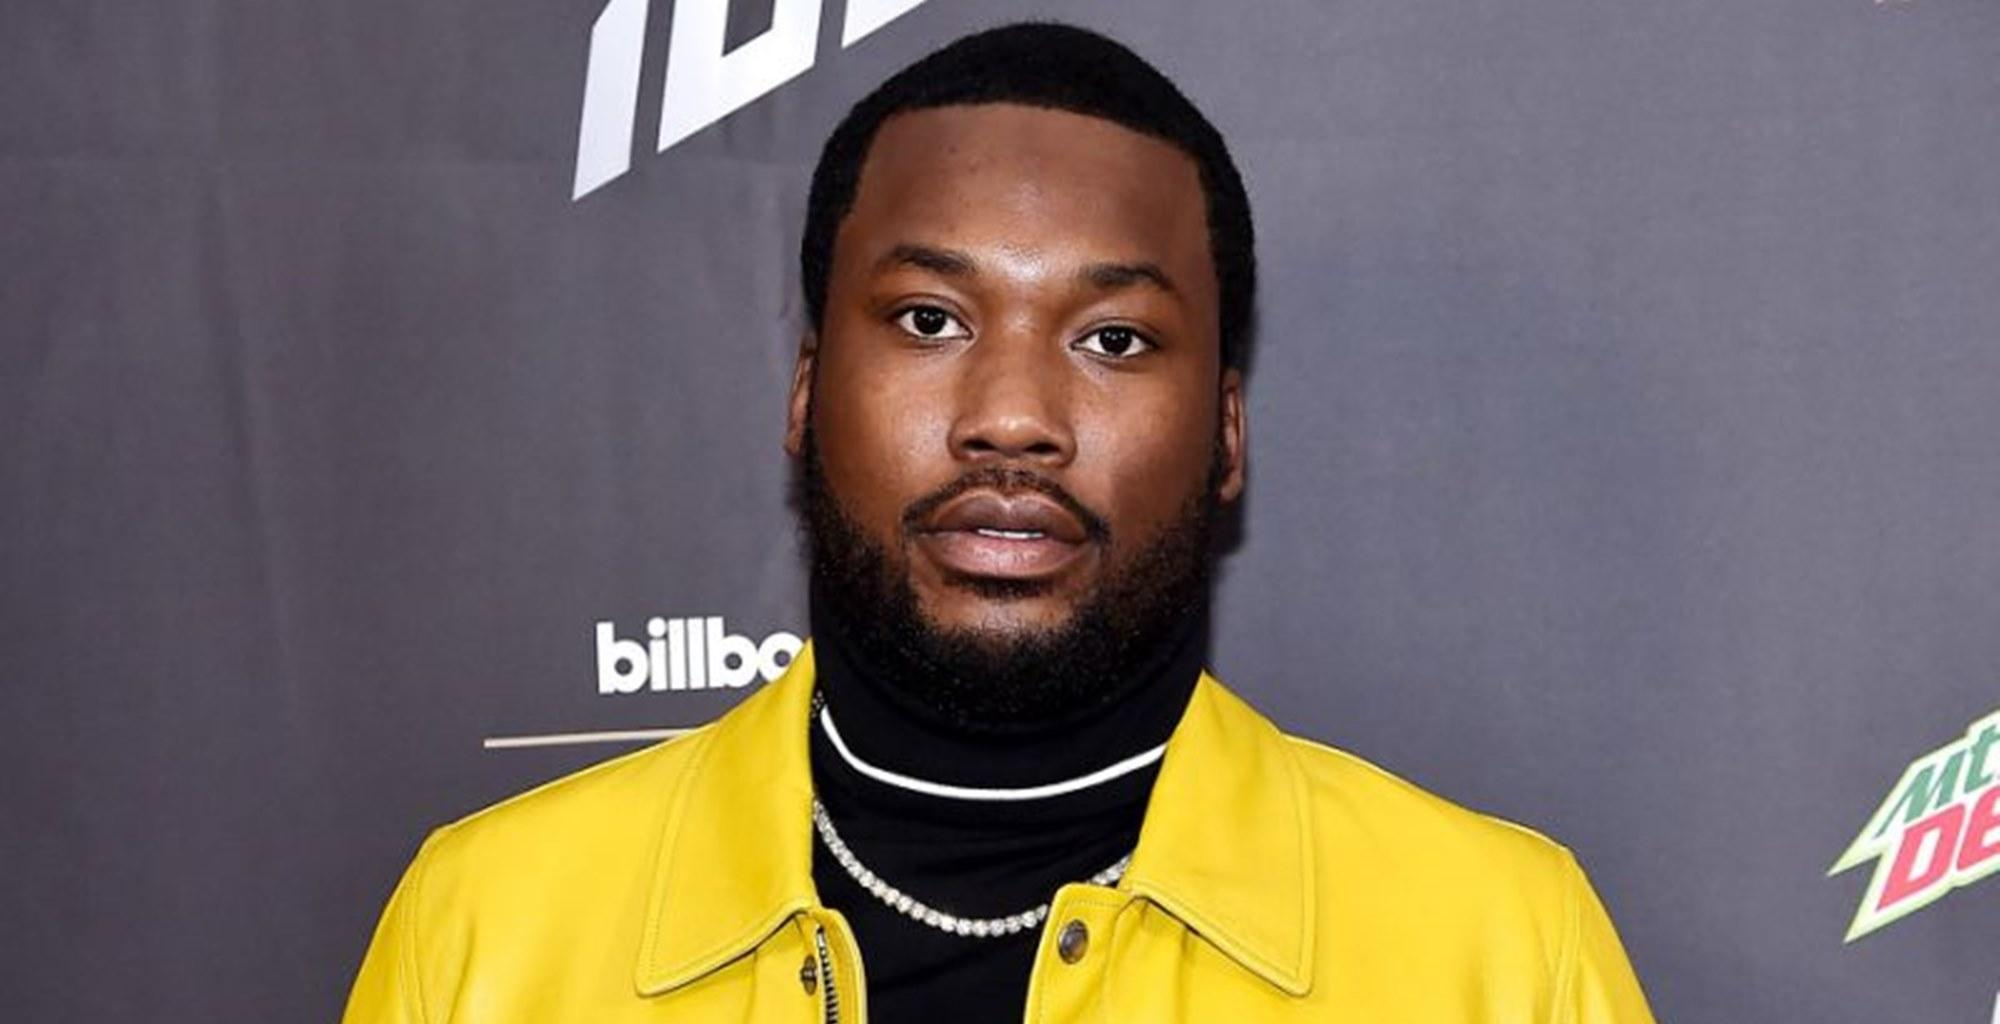 Meek Mill Finally Debuts His Stunning Pregnant Girlfriend, Milan Harris, On Instagram With This Viral Photo Days After Feuding With Nicki Minaj